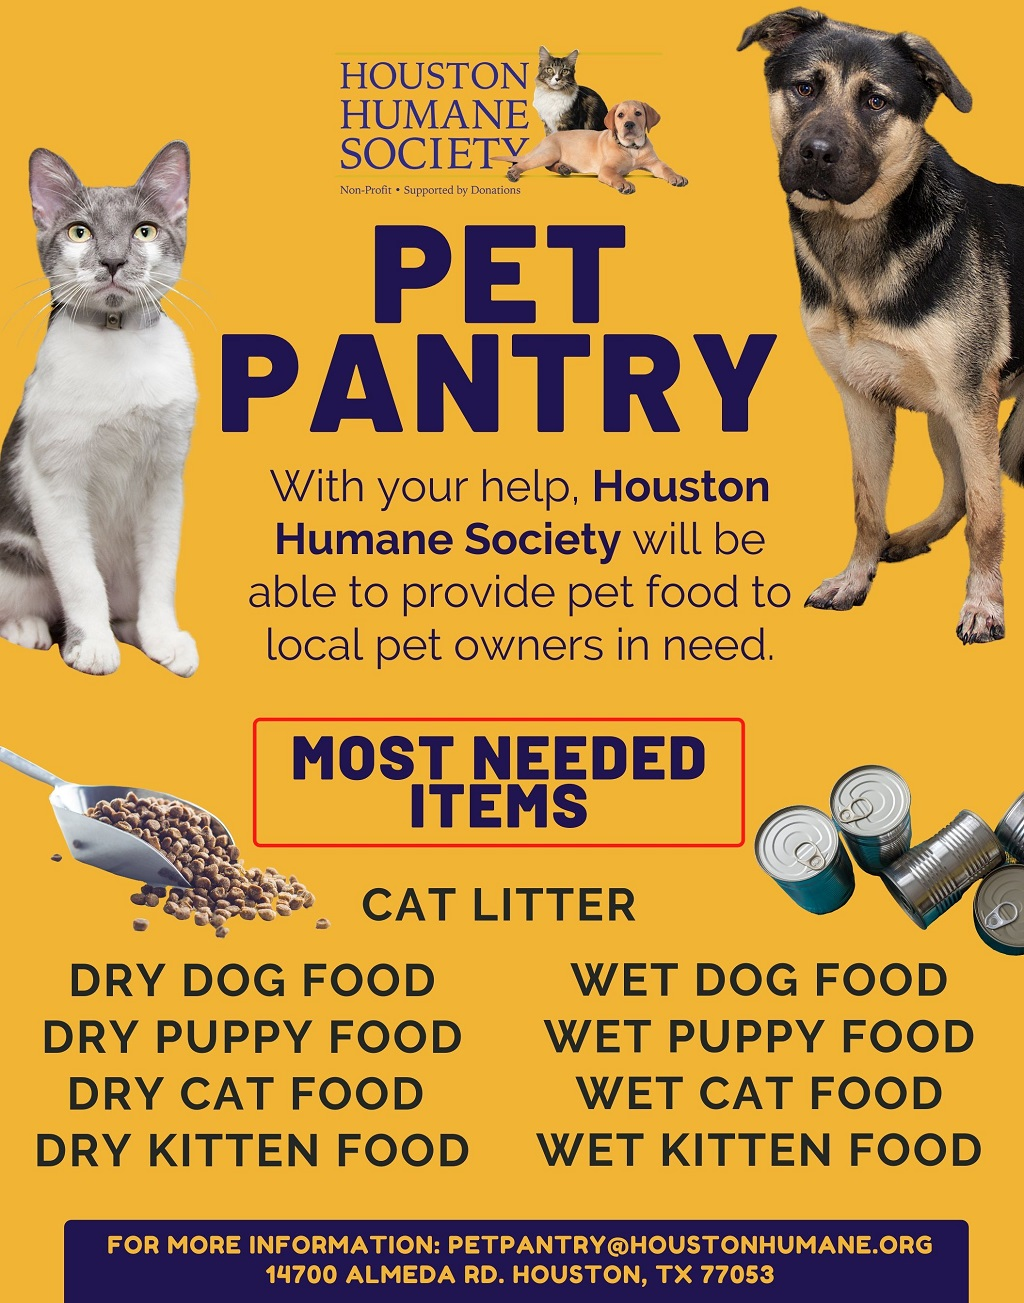 generic-pet-pantry-most-needed-items-poster